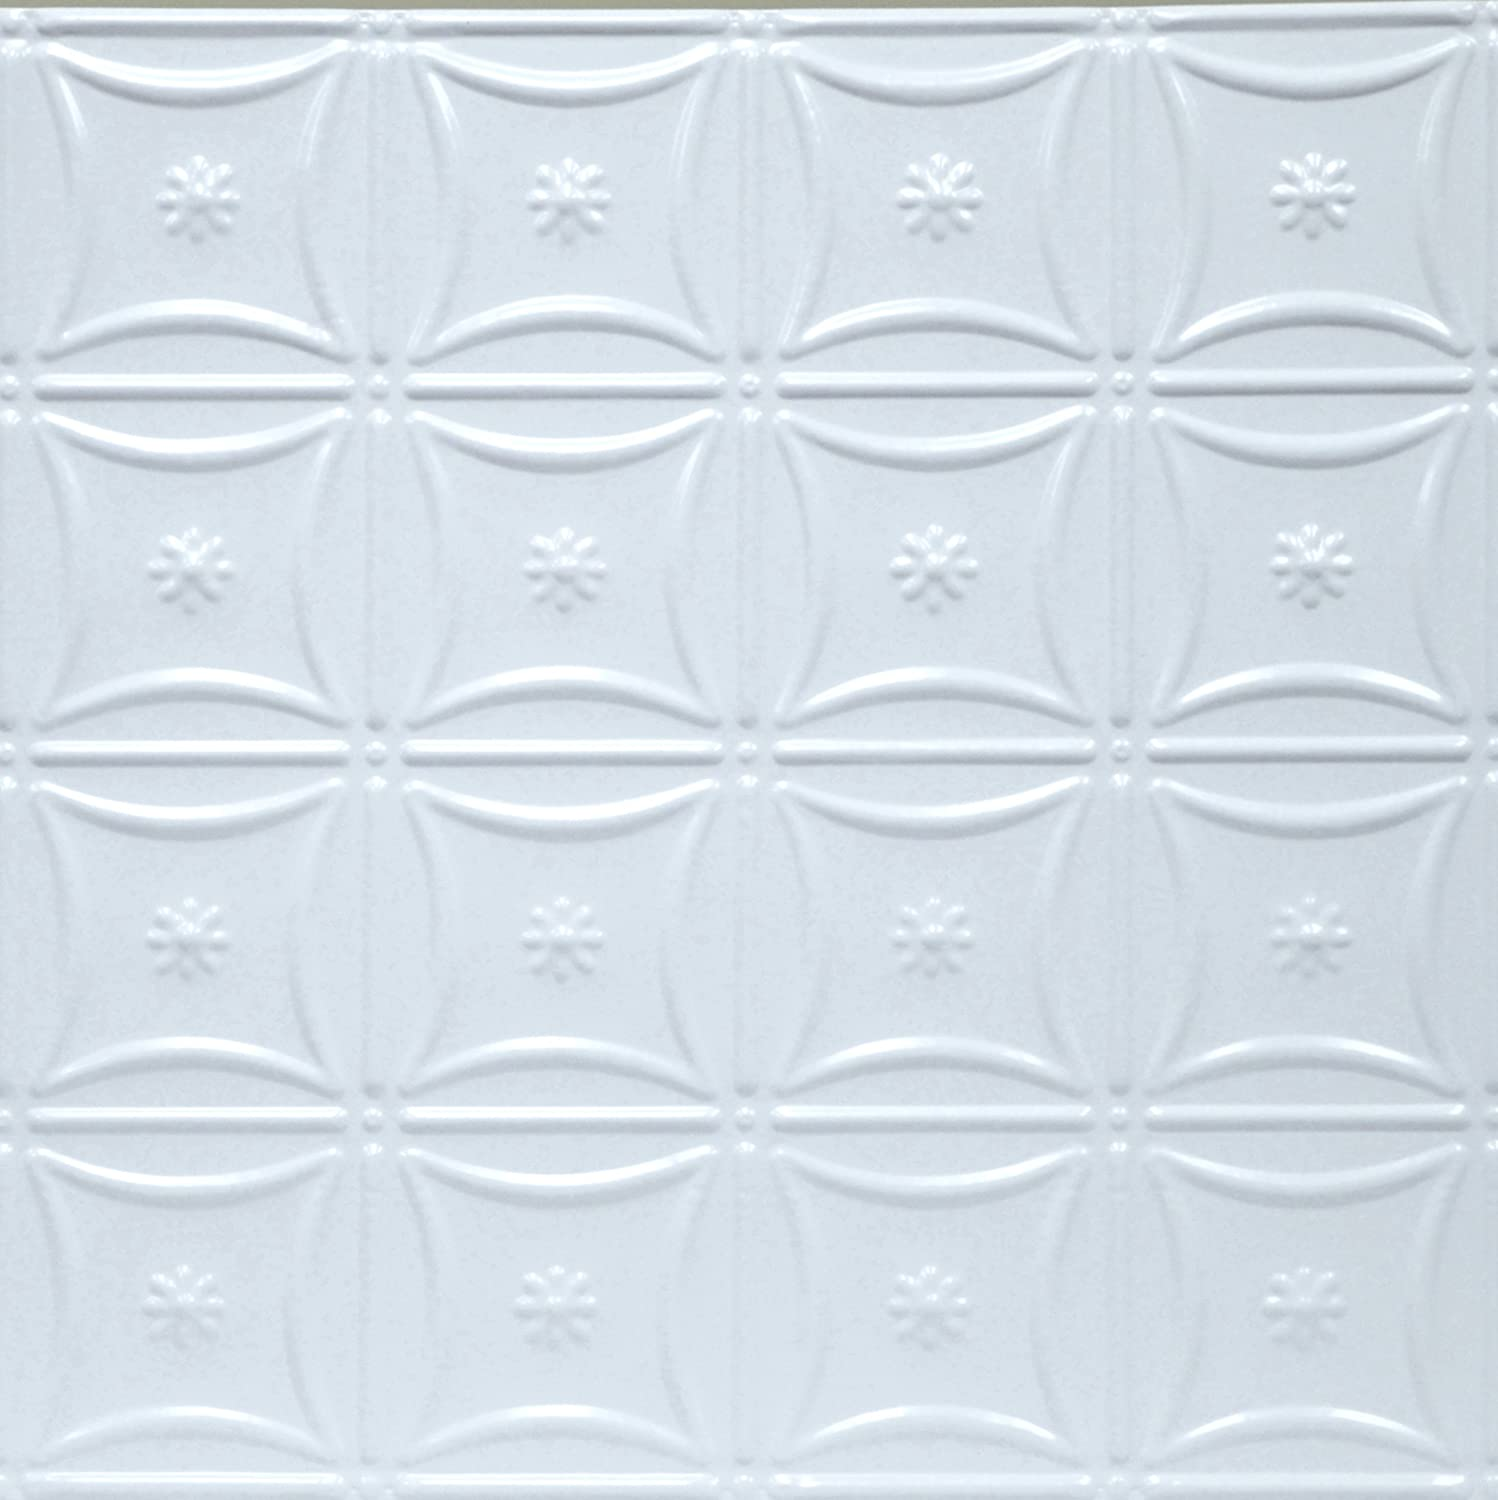 5 Piece ft 20 sq Shanko W200DA Pattern 200 Pressed Metal Wall and Ceiling Tiles White